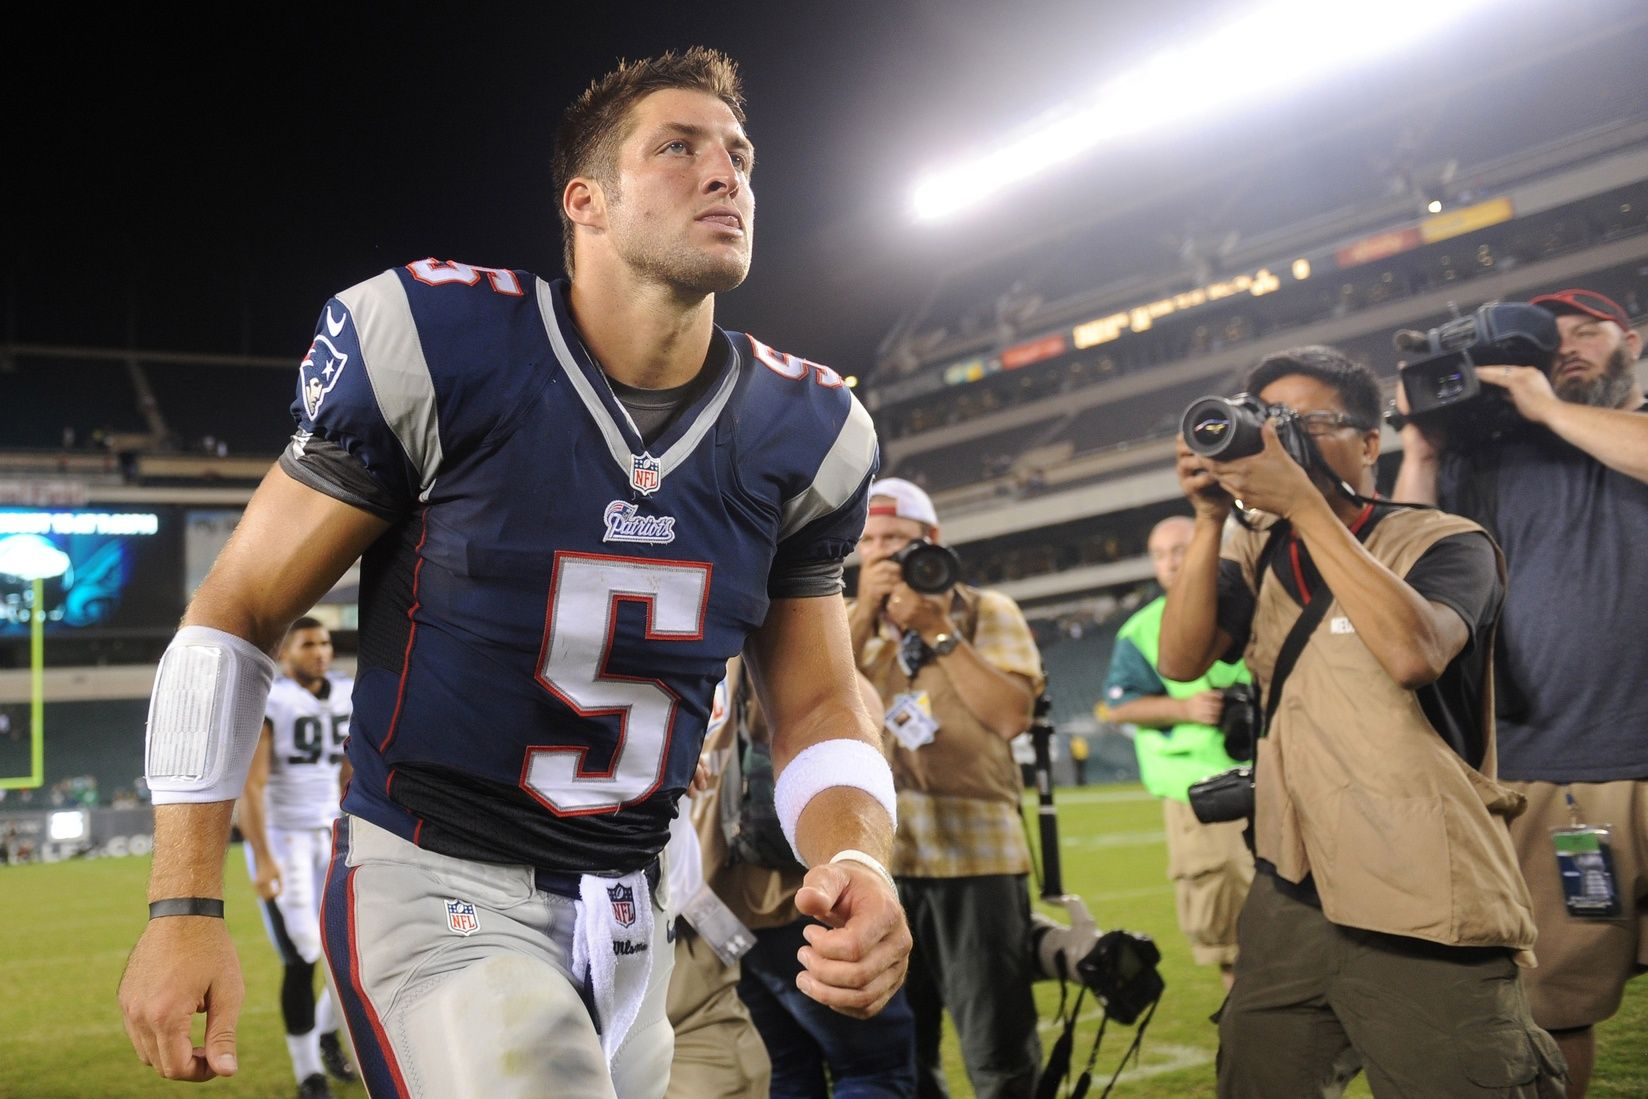 tim tebow patriot Tim Tebow News and Video brought to